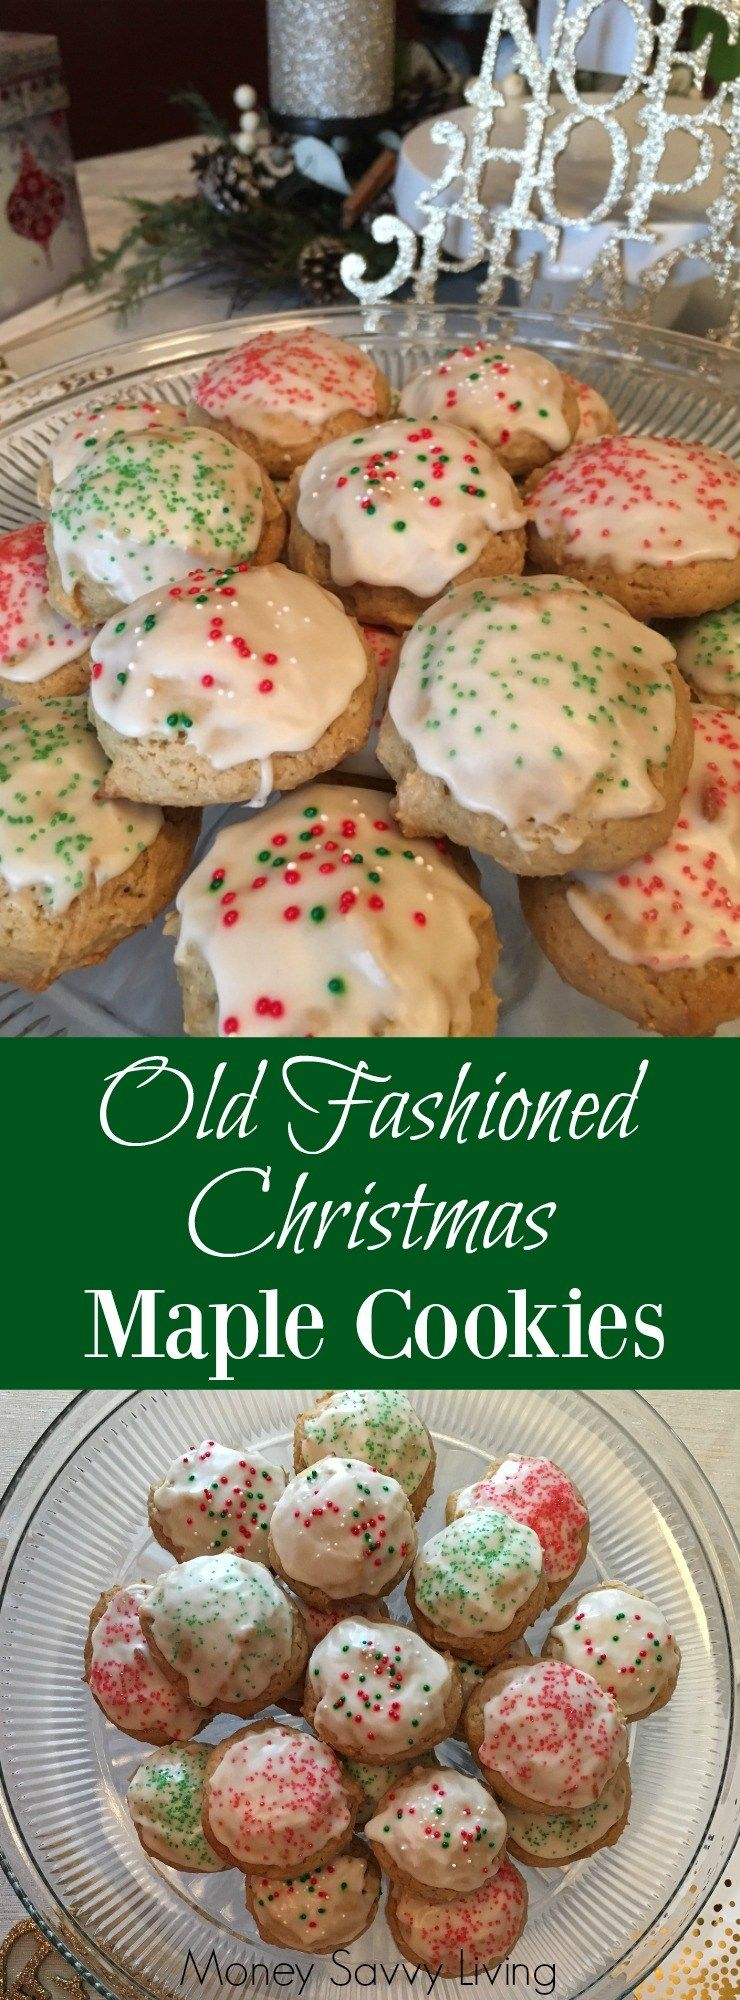 Old Fashioned Christmas Maple Cookies | Maple cookies, Christmas ...